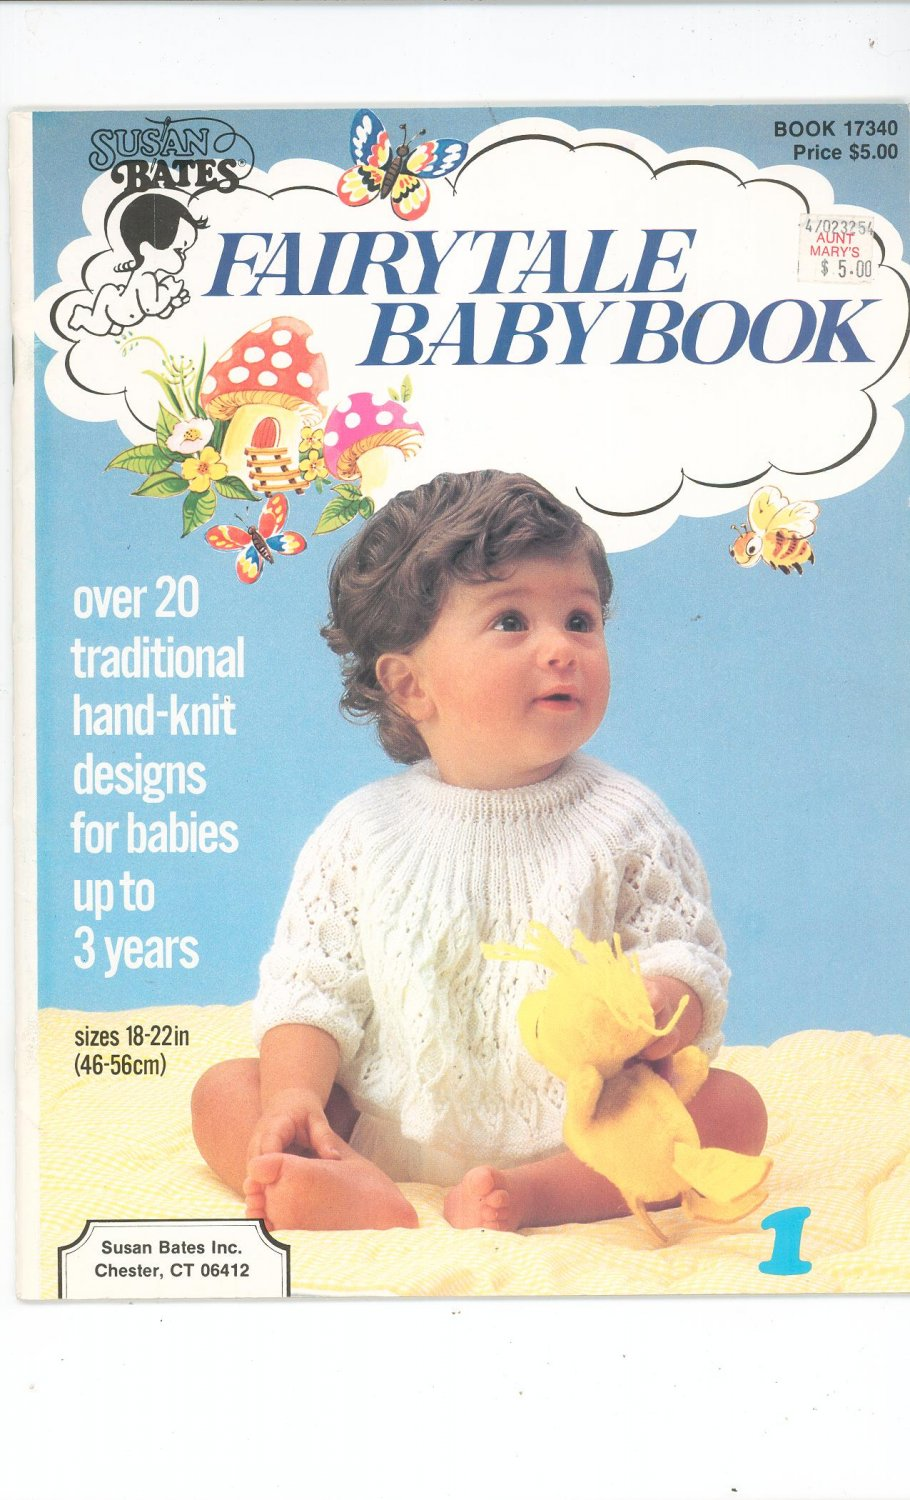 Fairytale Baby Book Susan Bates 17340 Traditional Hand Knit